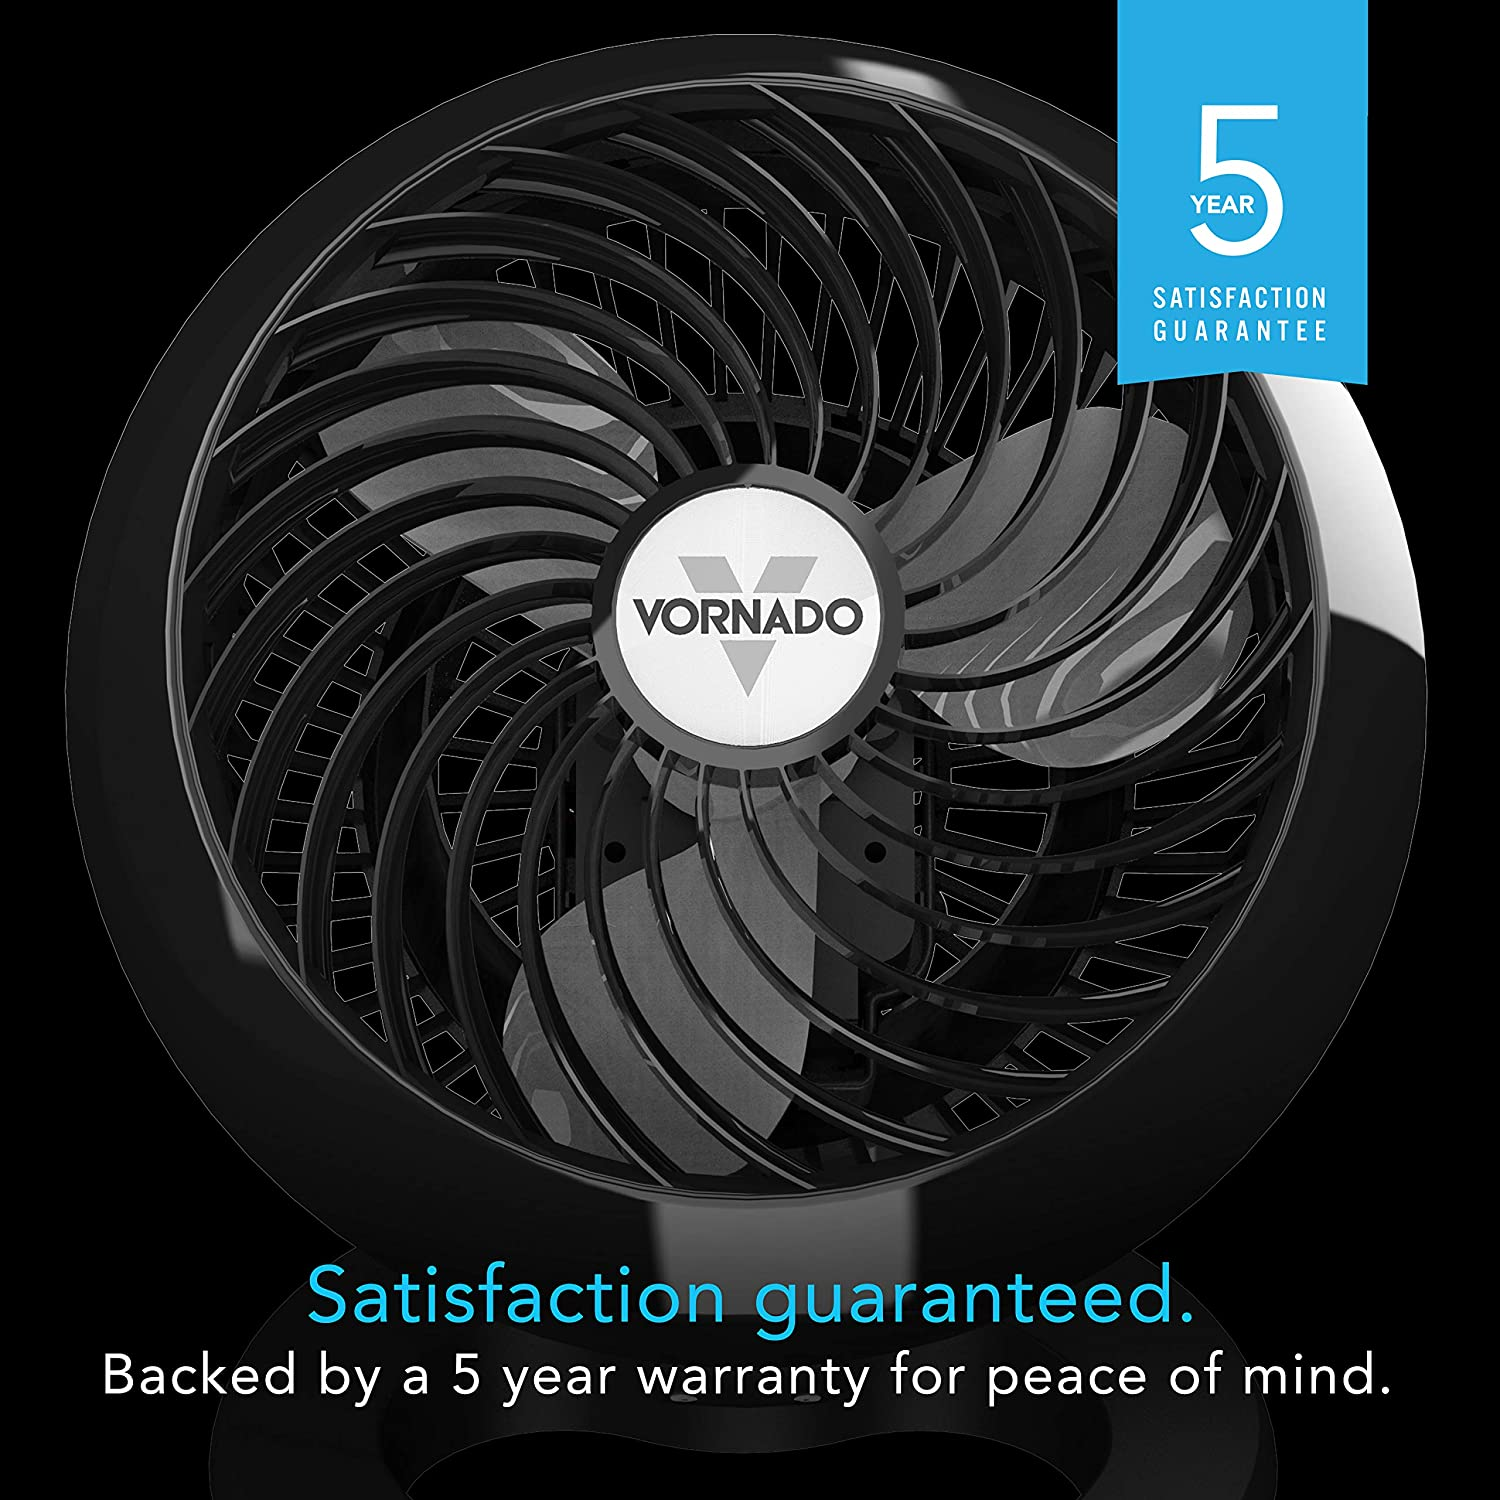 Vornado 460 Small Whole Room Air Circulator Fan with 3 Speeds, Black: Home & Kitchen